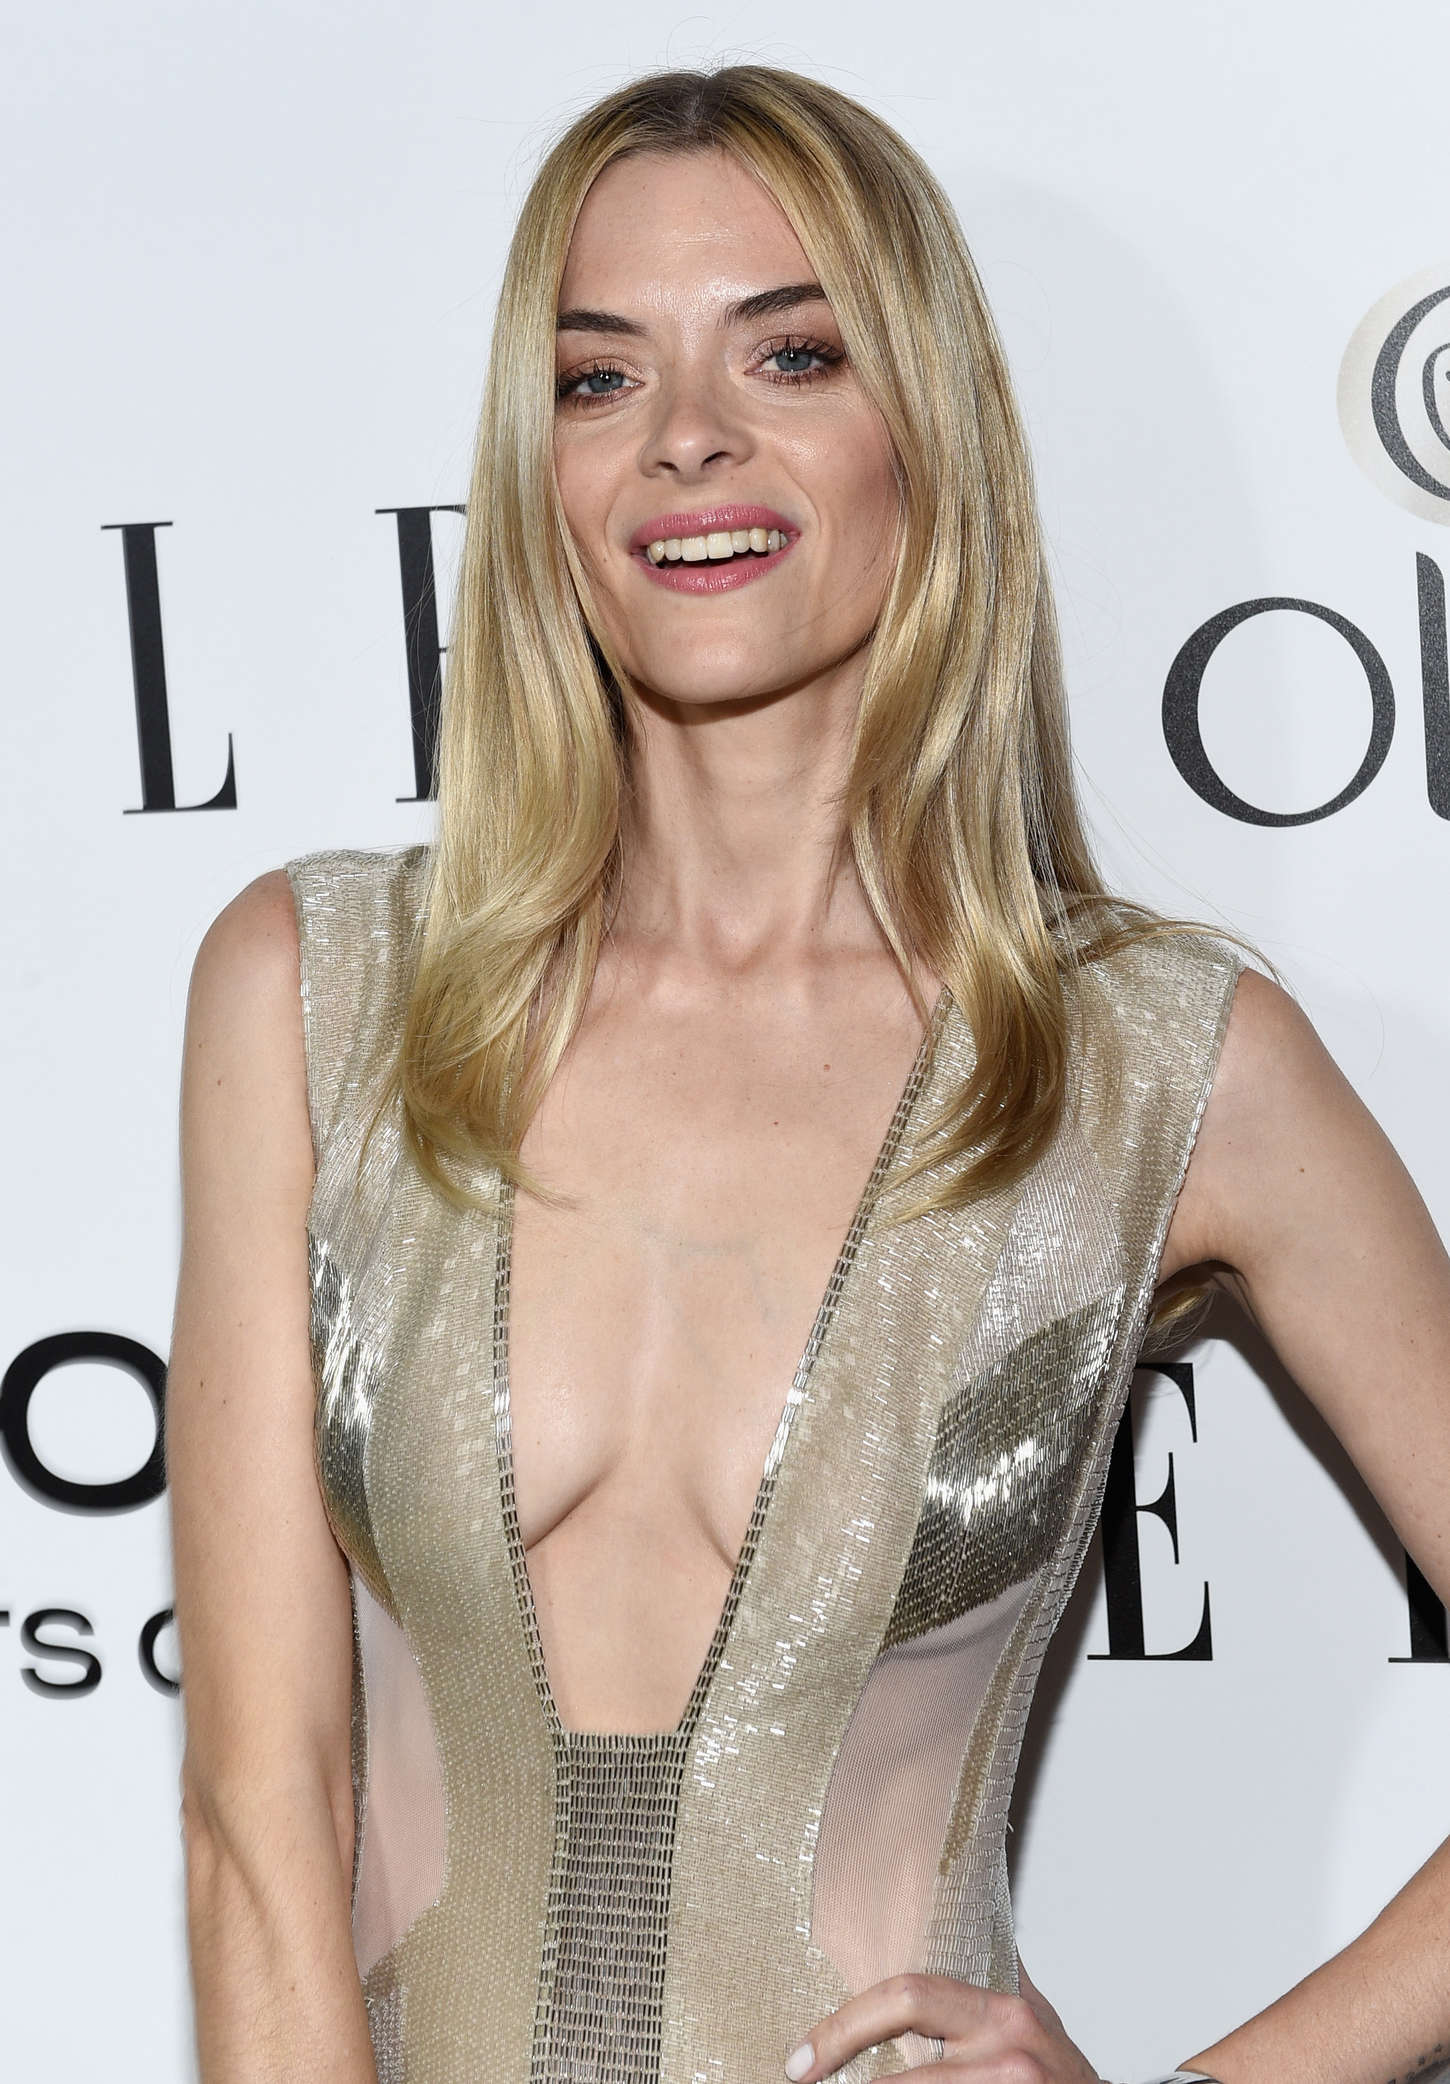 Image result for jaime king